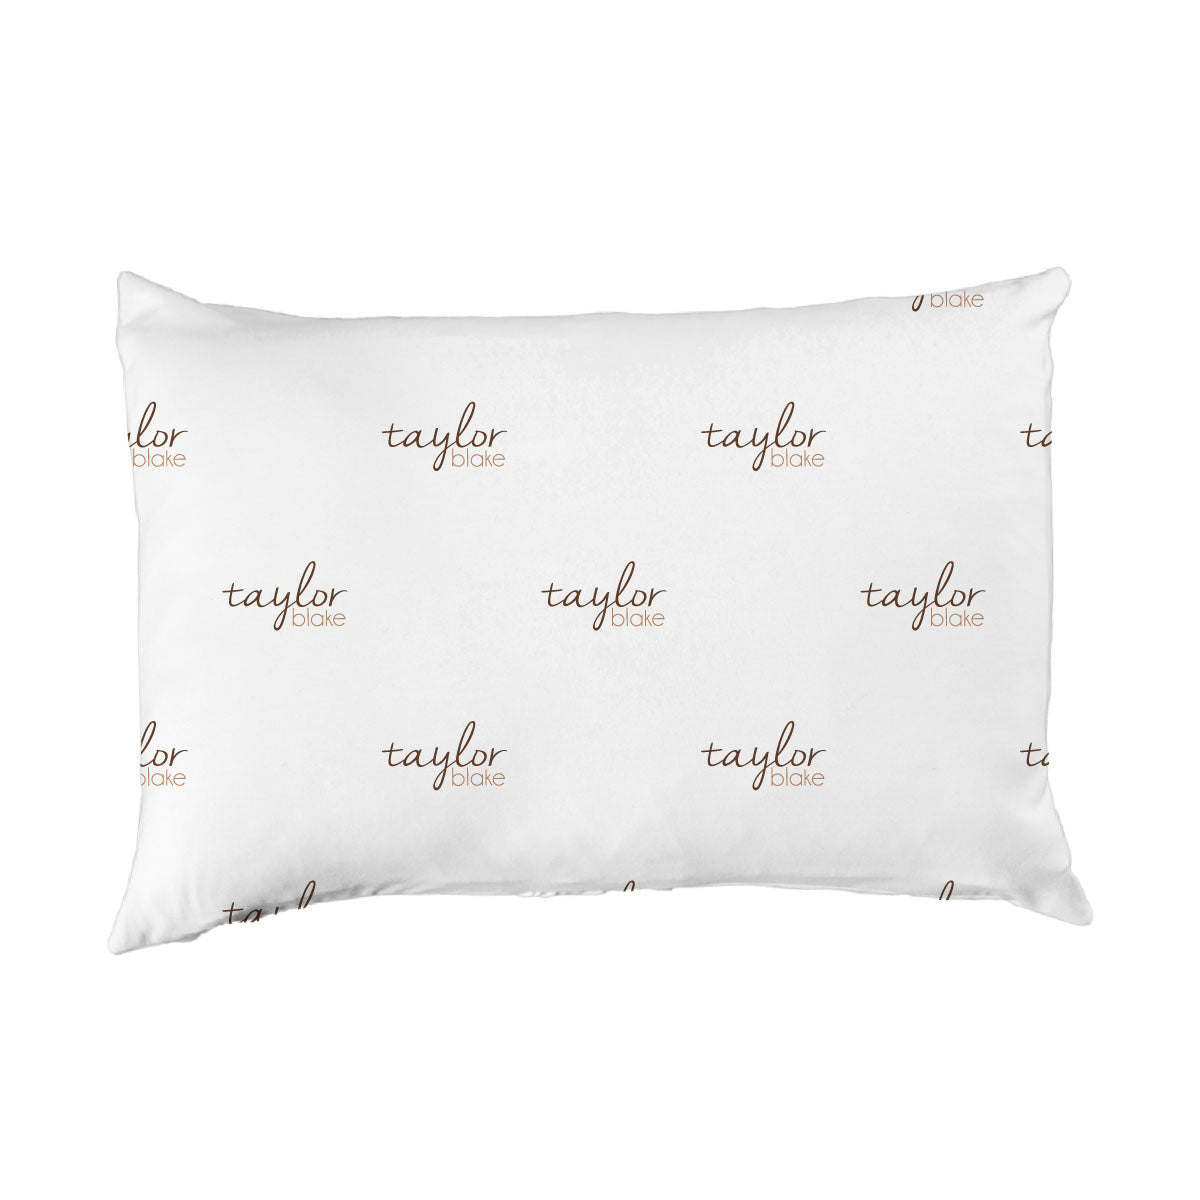 Taylor's Simple Dashes | Big Kid Pillow Case